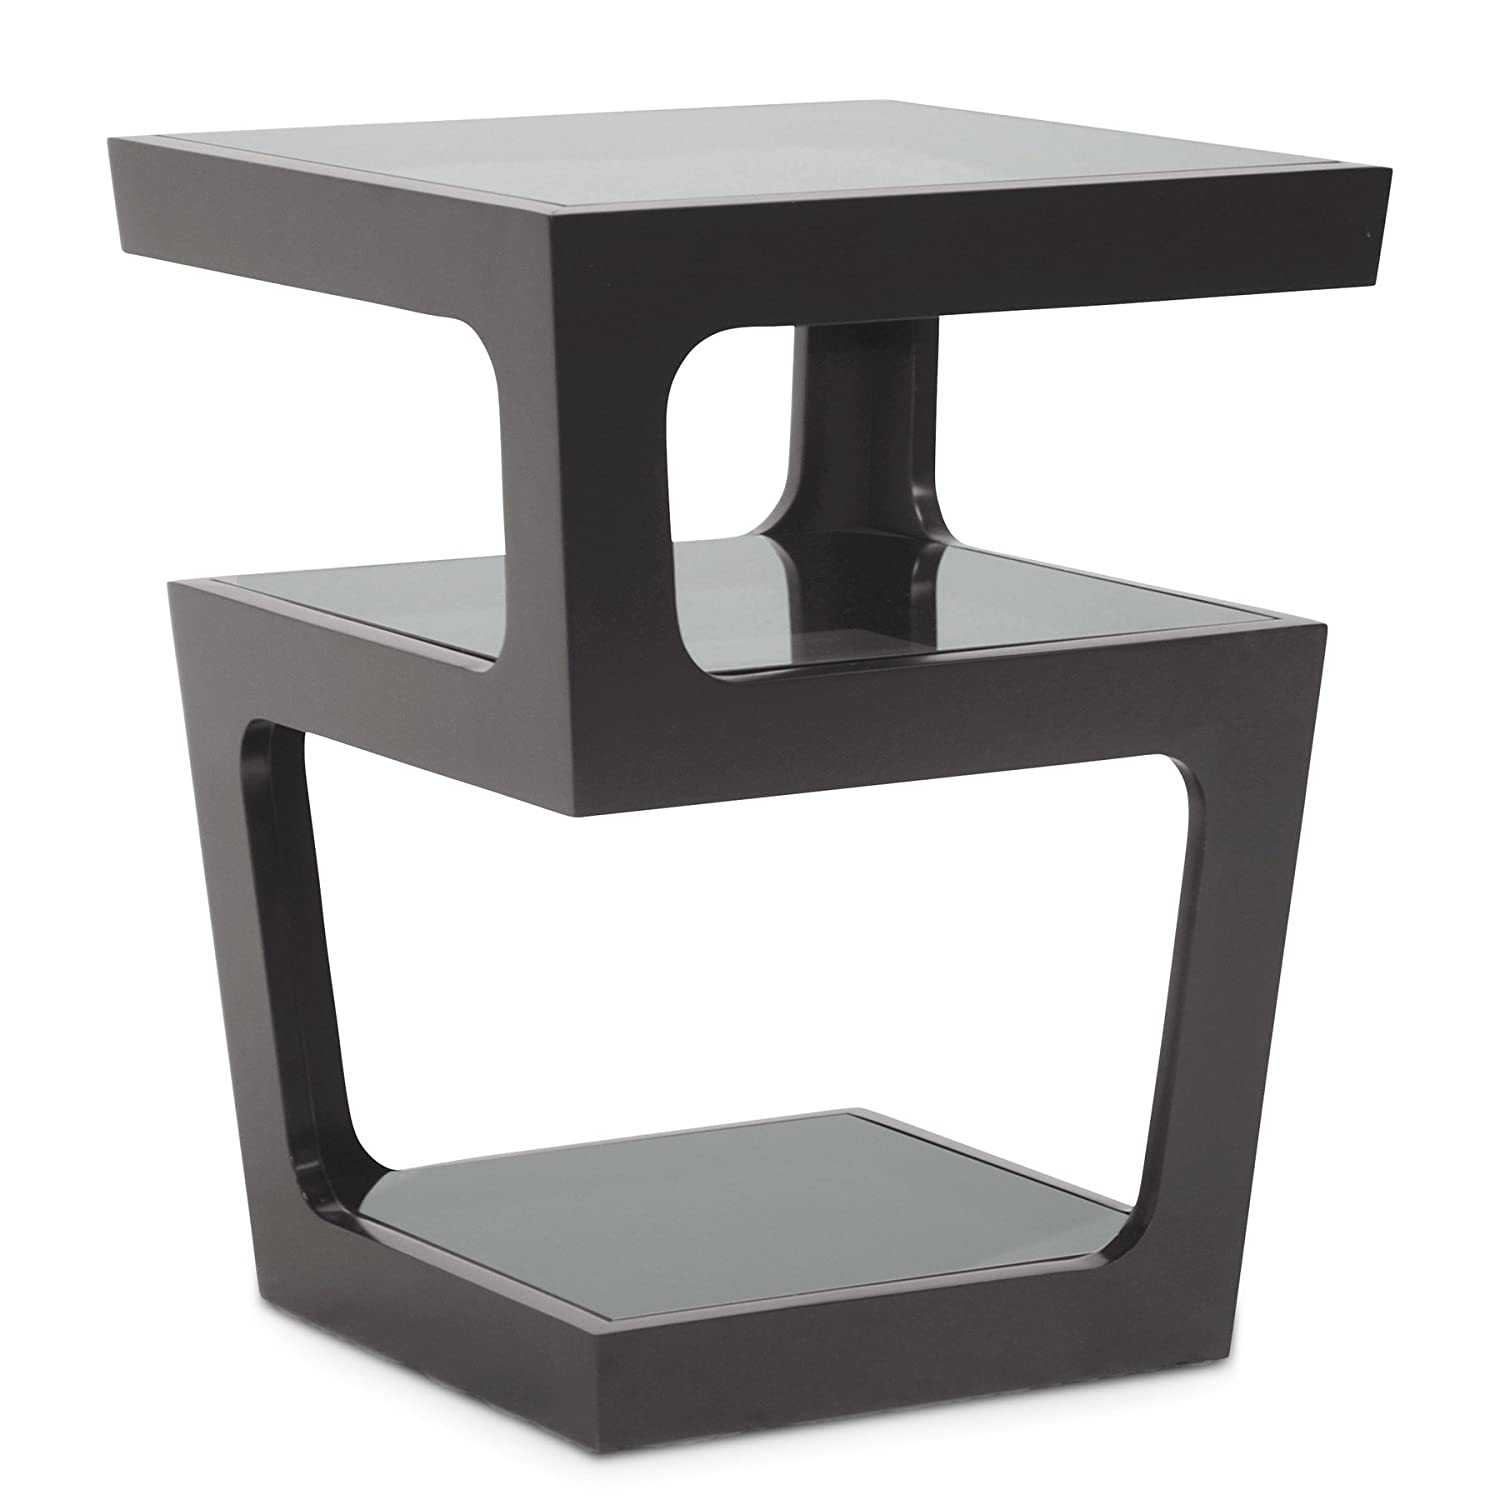 Amazon.com: Baxton Studio Clara Modern End Table with 3-Tiered Glass ...